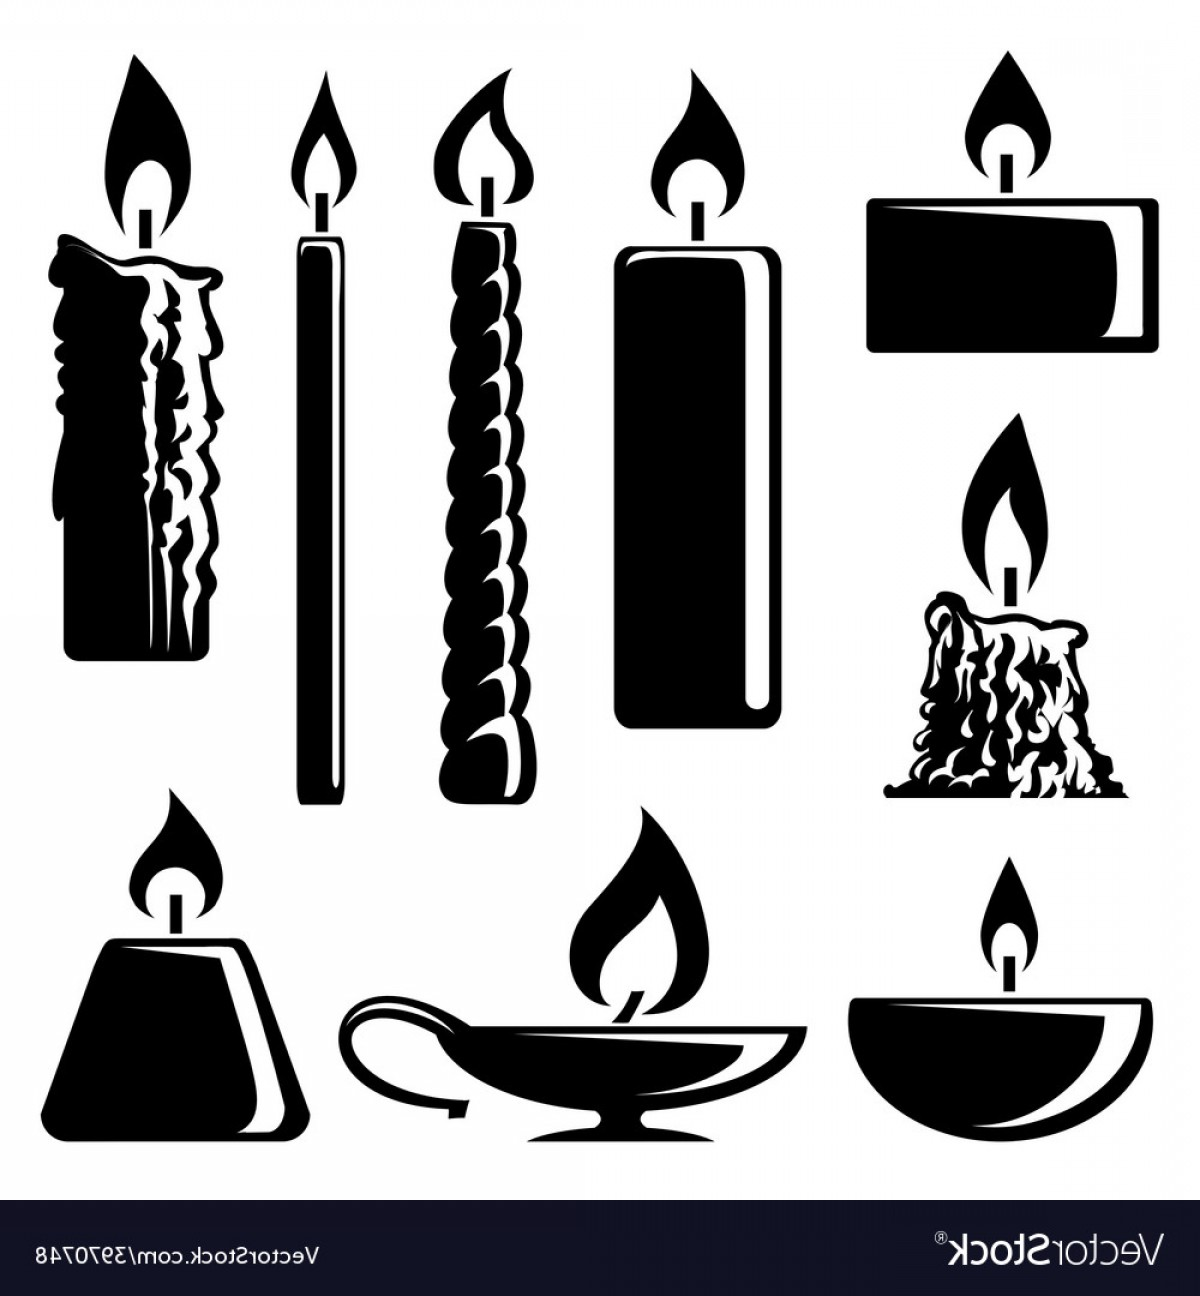 Candle Vector Black: Black And White Silhouette Burning Candles Vector